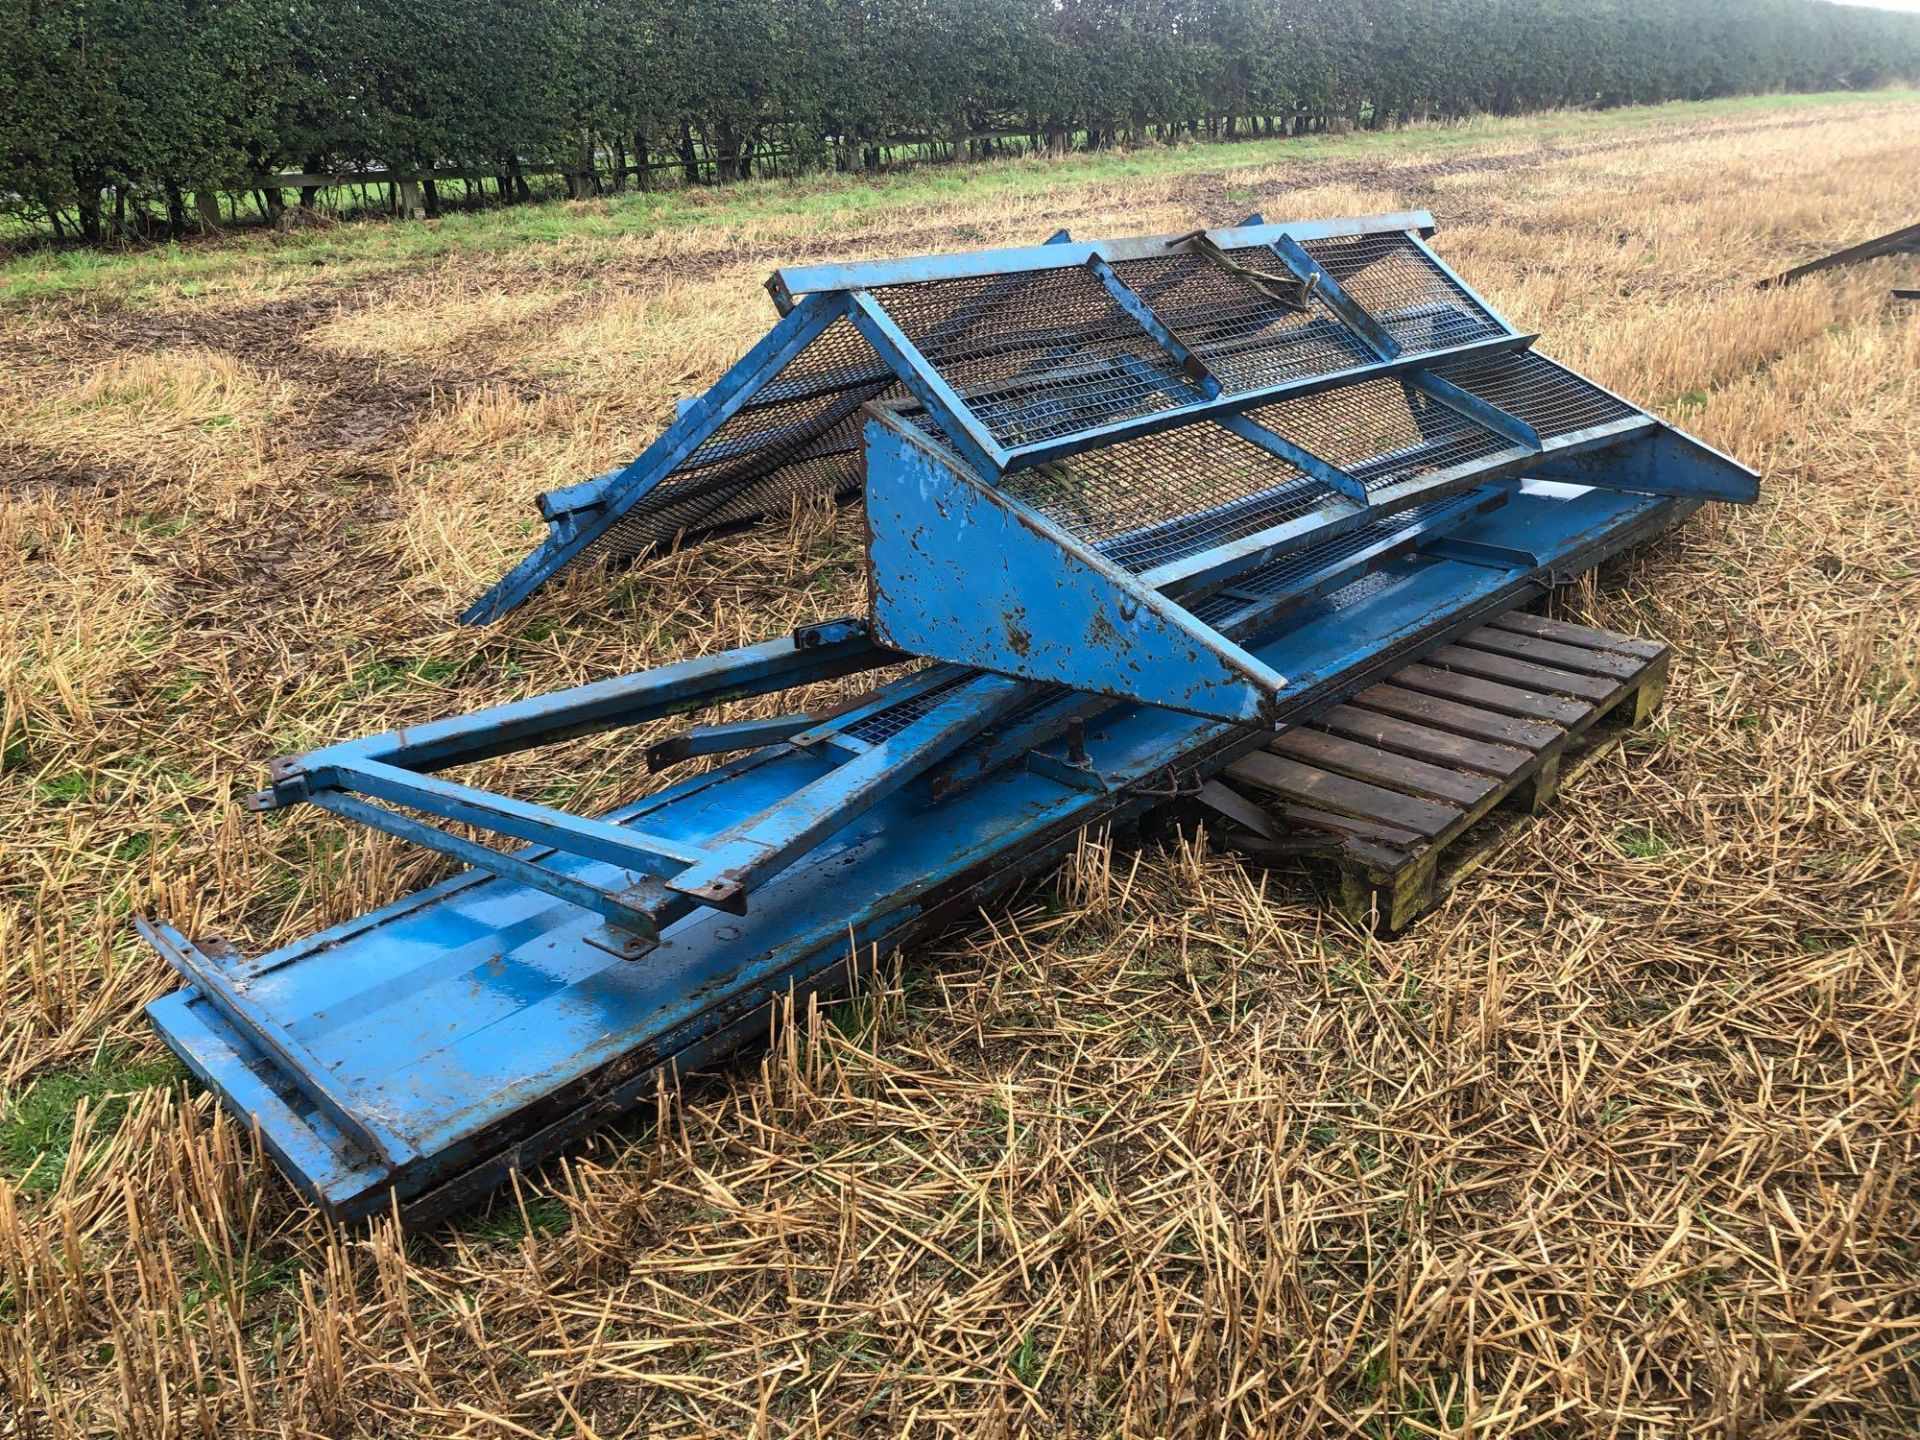 8t twin axle trailer with manual rear door and grain chute. C/w silage sides. On 12.5/80-15.3 wheels - Image 8 of 8